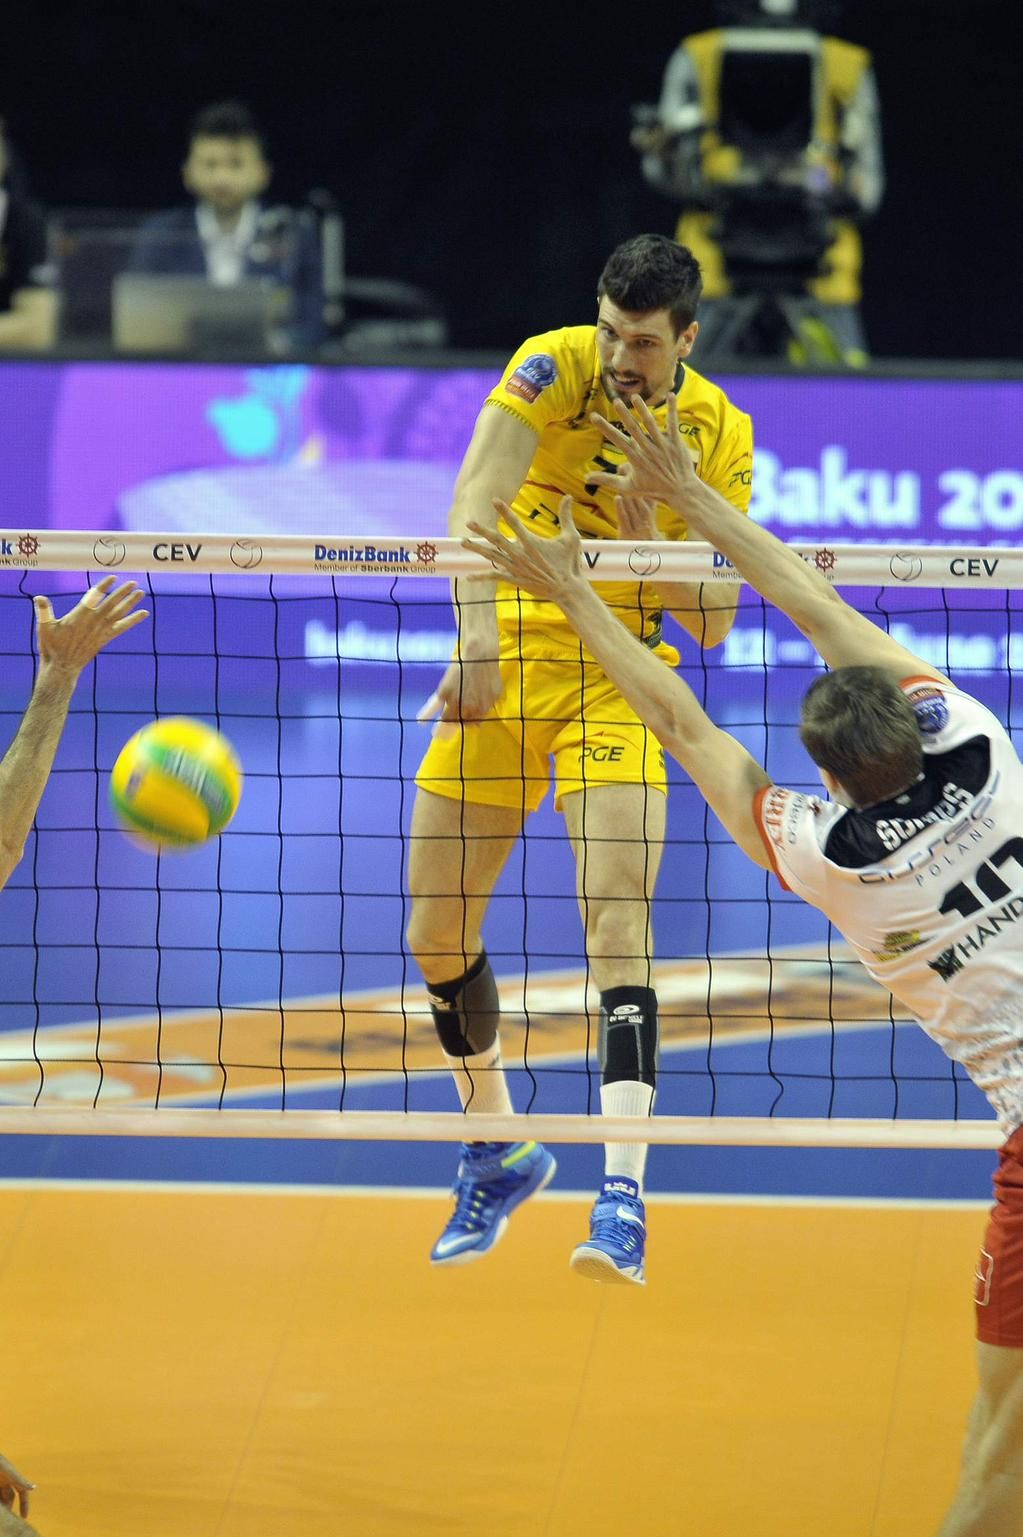 Facundo Conte Facuconte7 Professional Volleyball Volleyball Poses Volley